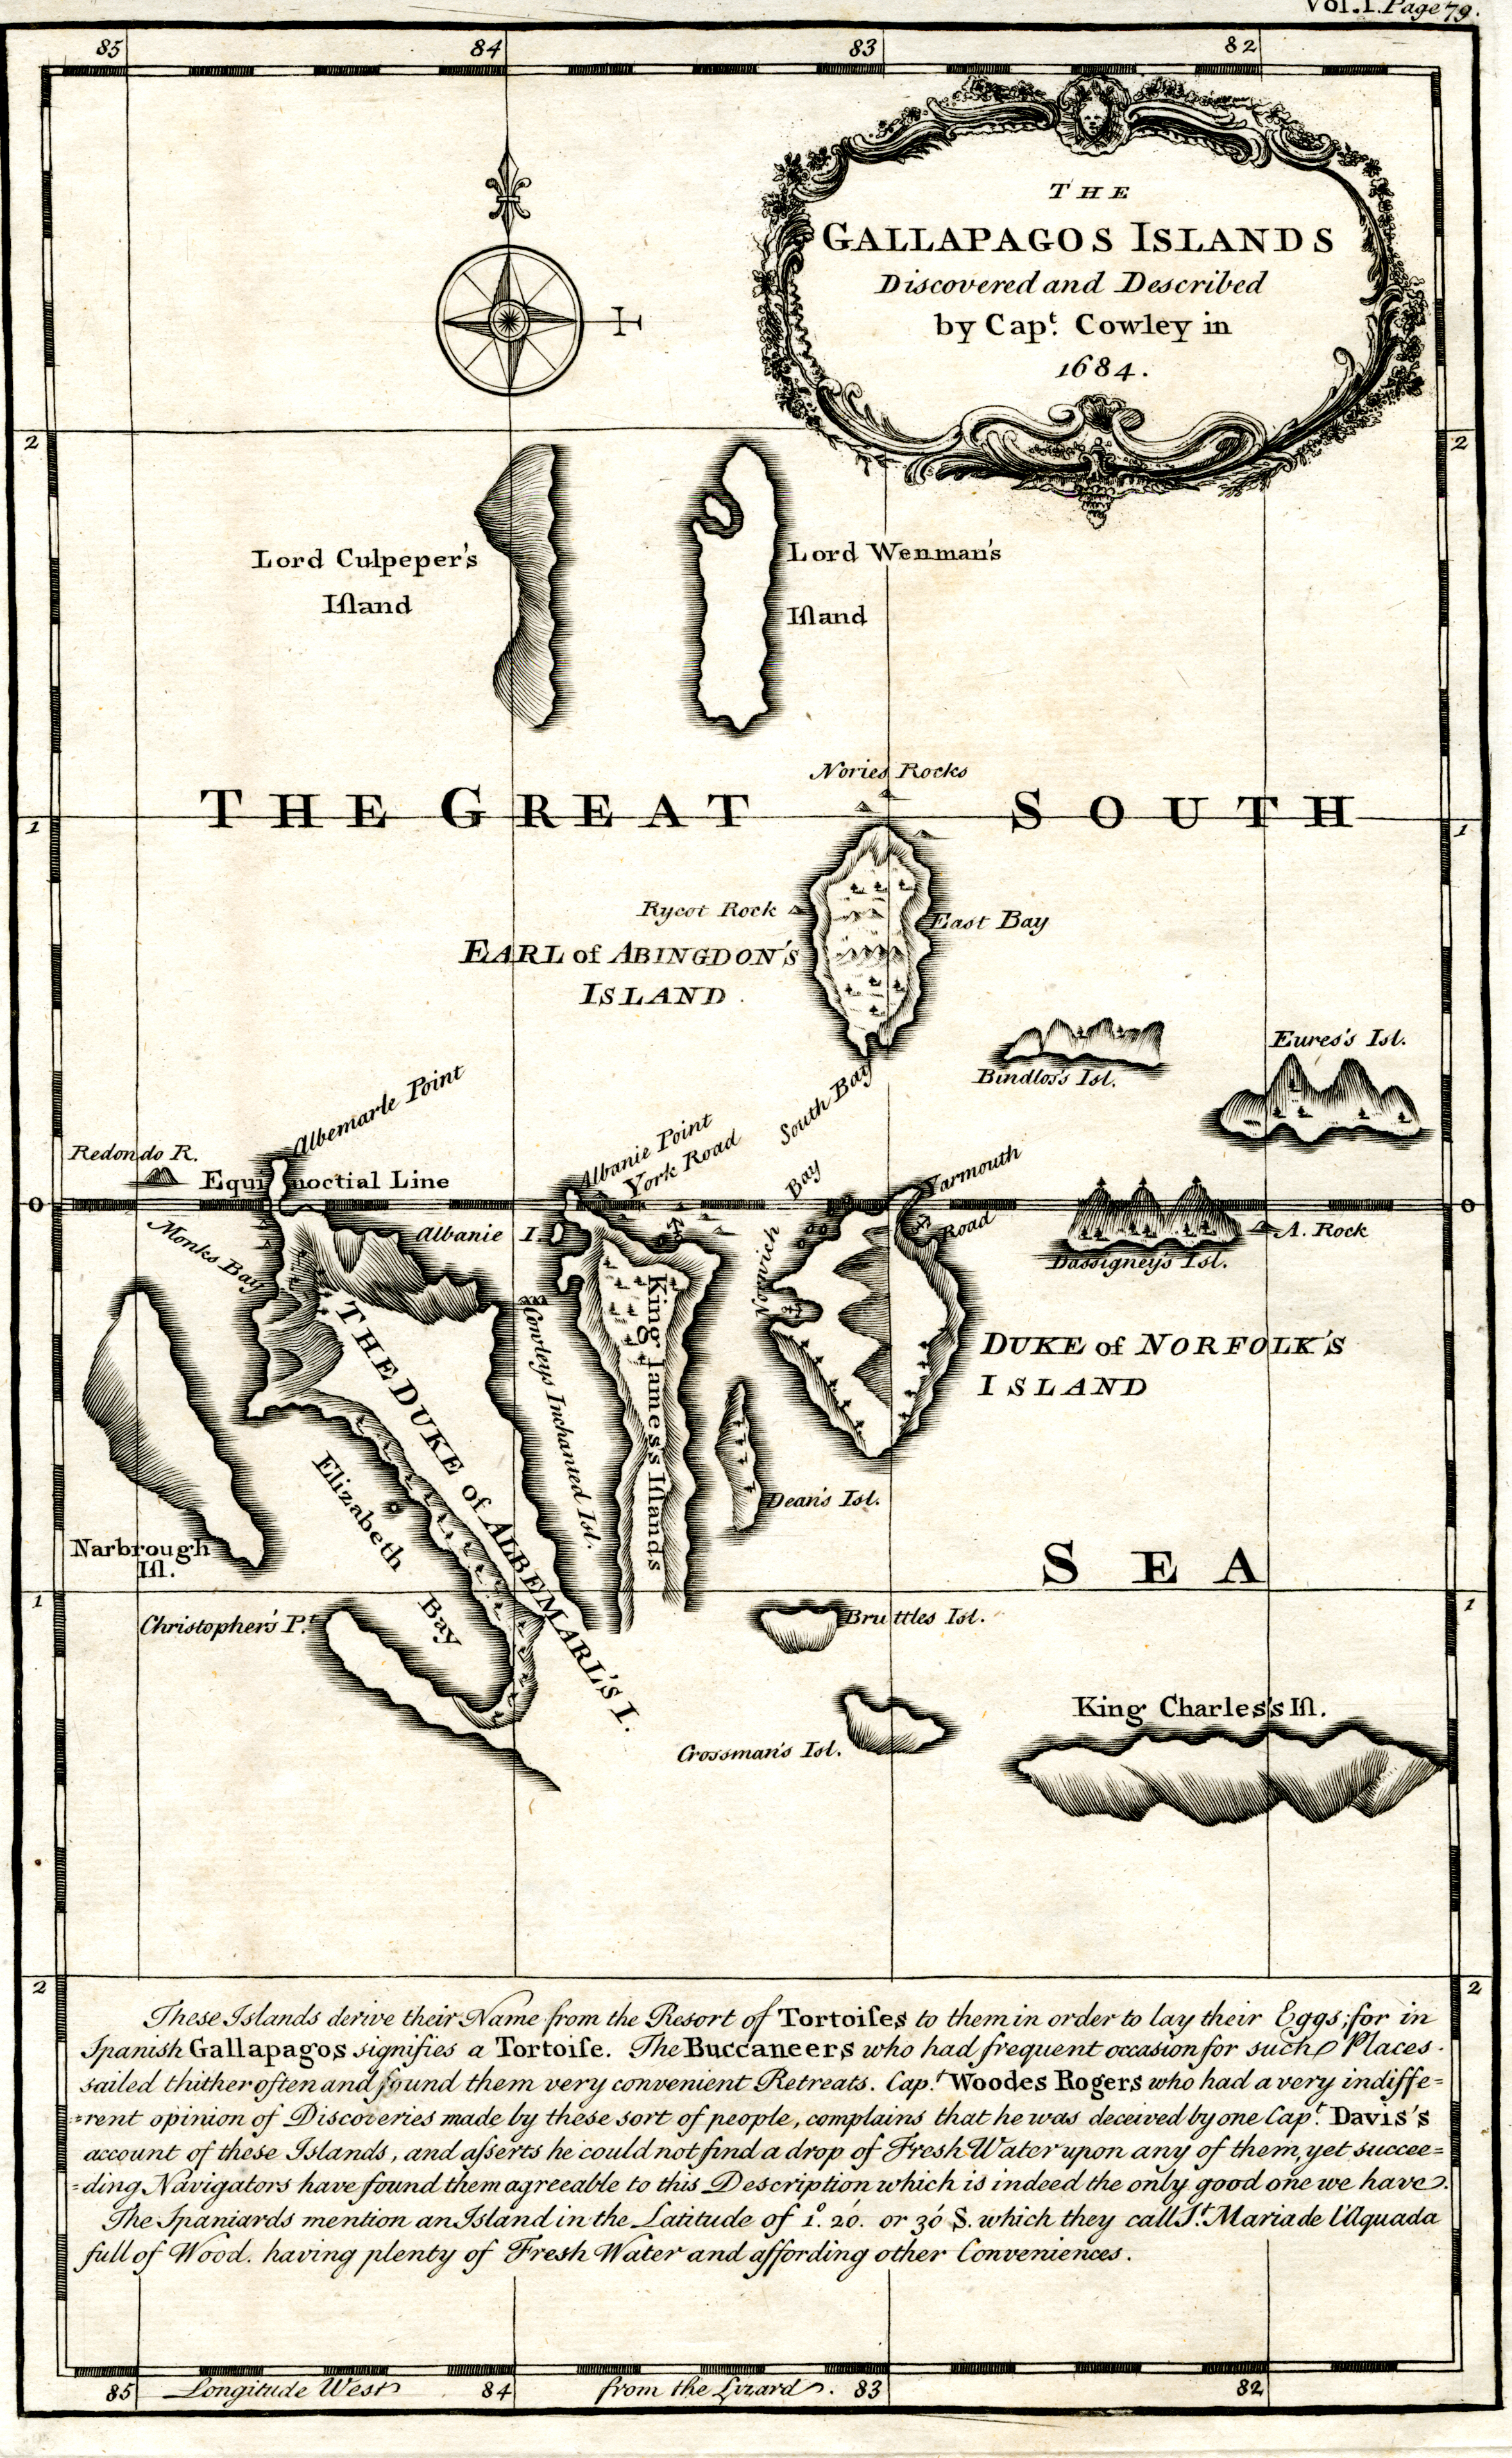 Map of the Galapagos Islands as described by Ambrose Cowley in 1684.